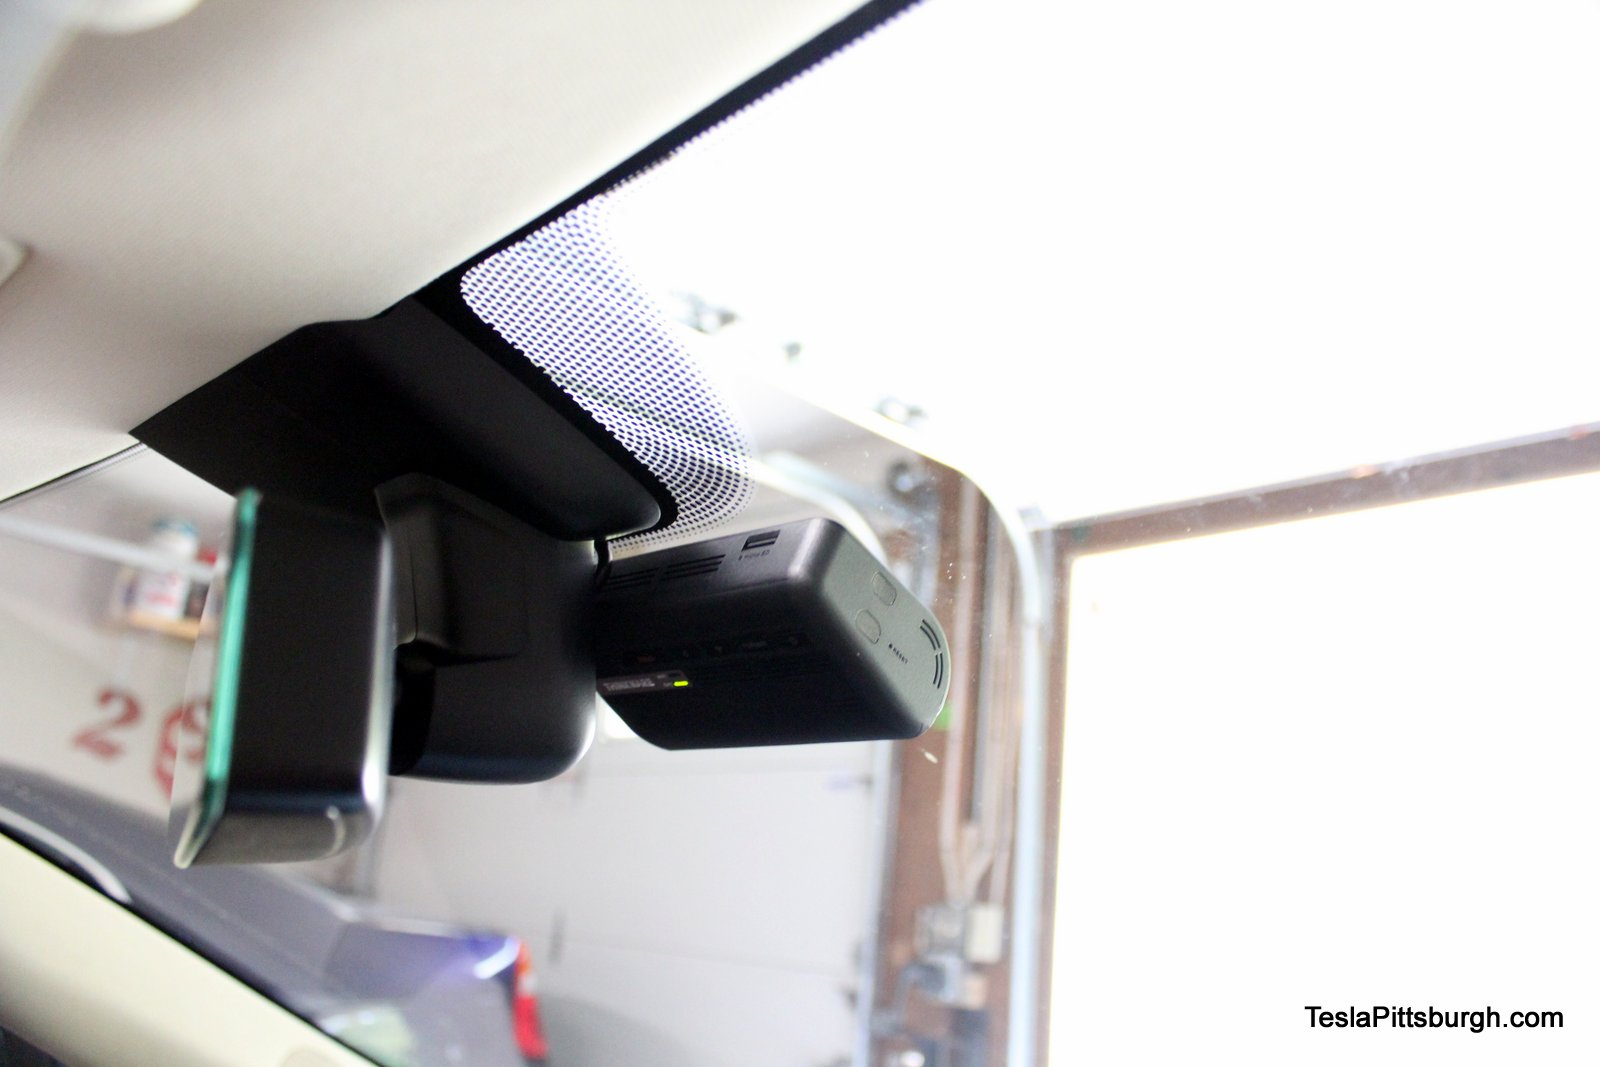 tesla-pittsburgh-dashcam-review-thinkware-f770-camera-mounted-windshield